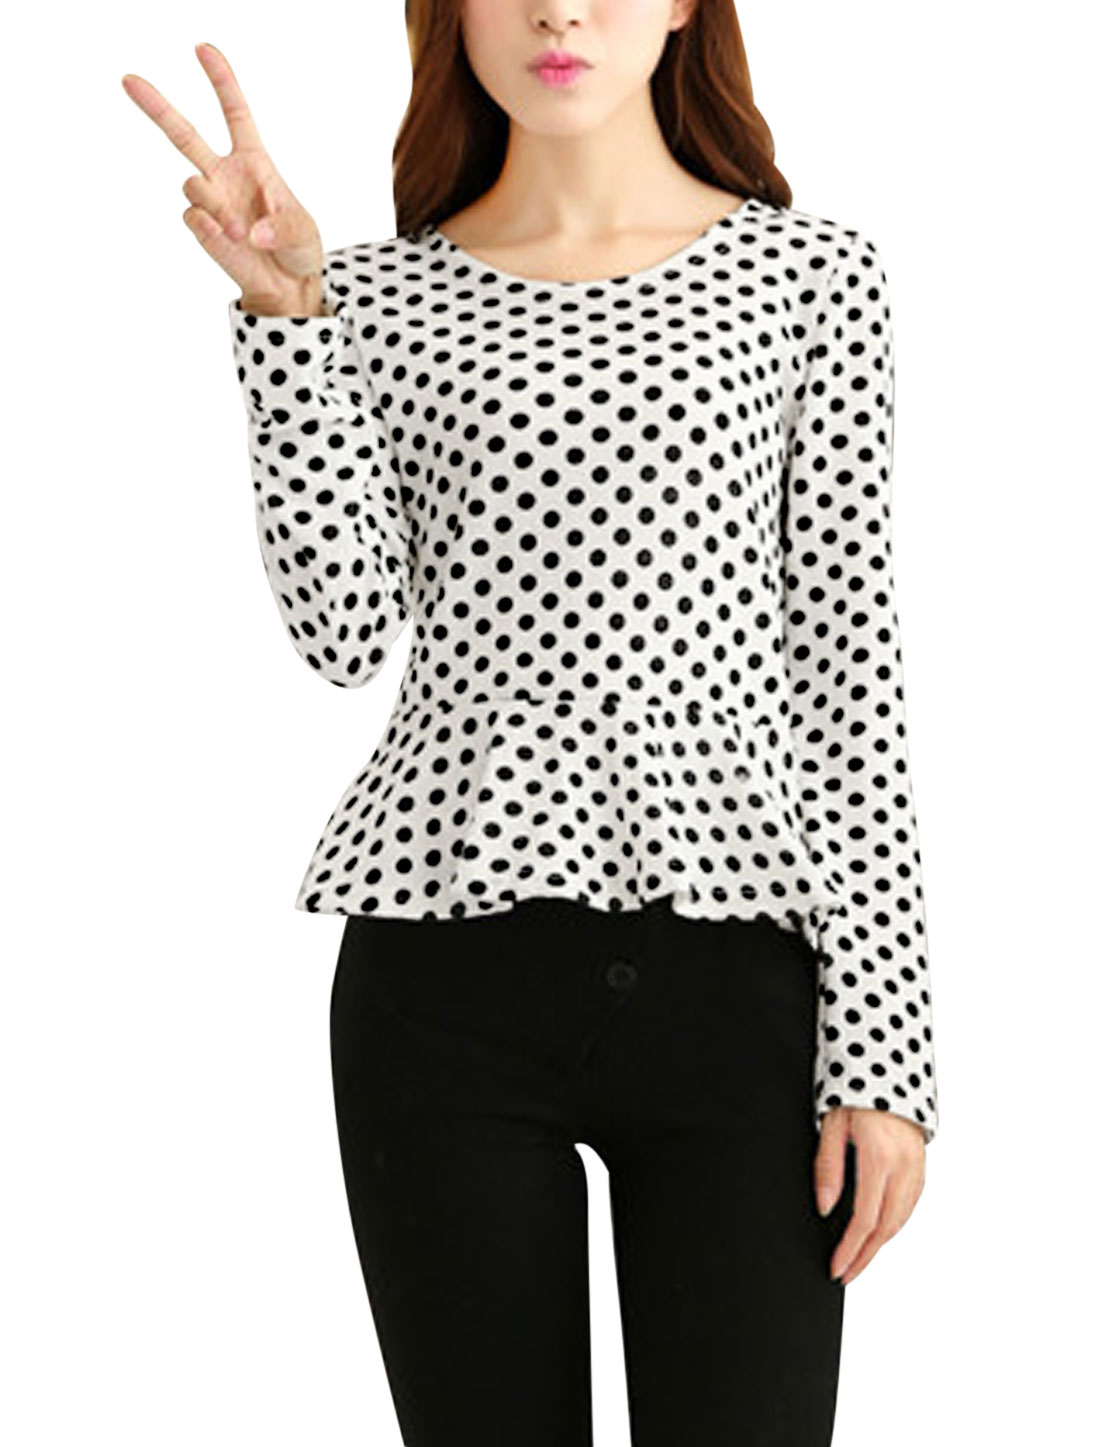 Women Beige Round Neck Dots Long Sleeves Knitting Peplum Top XS